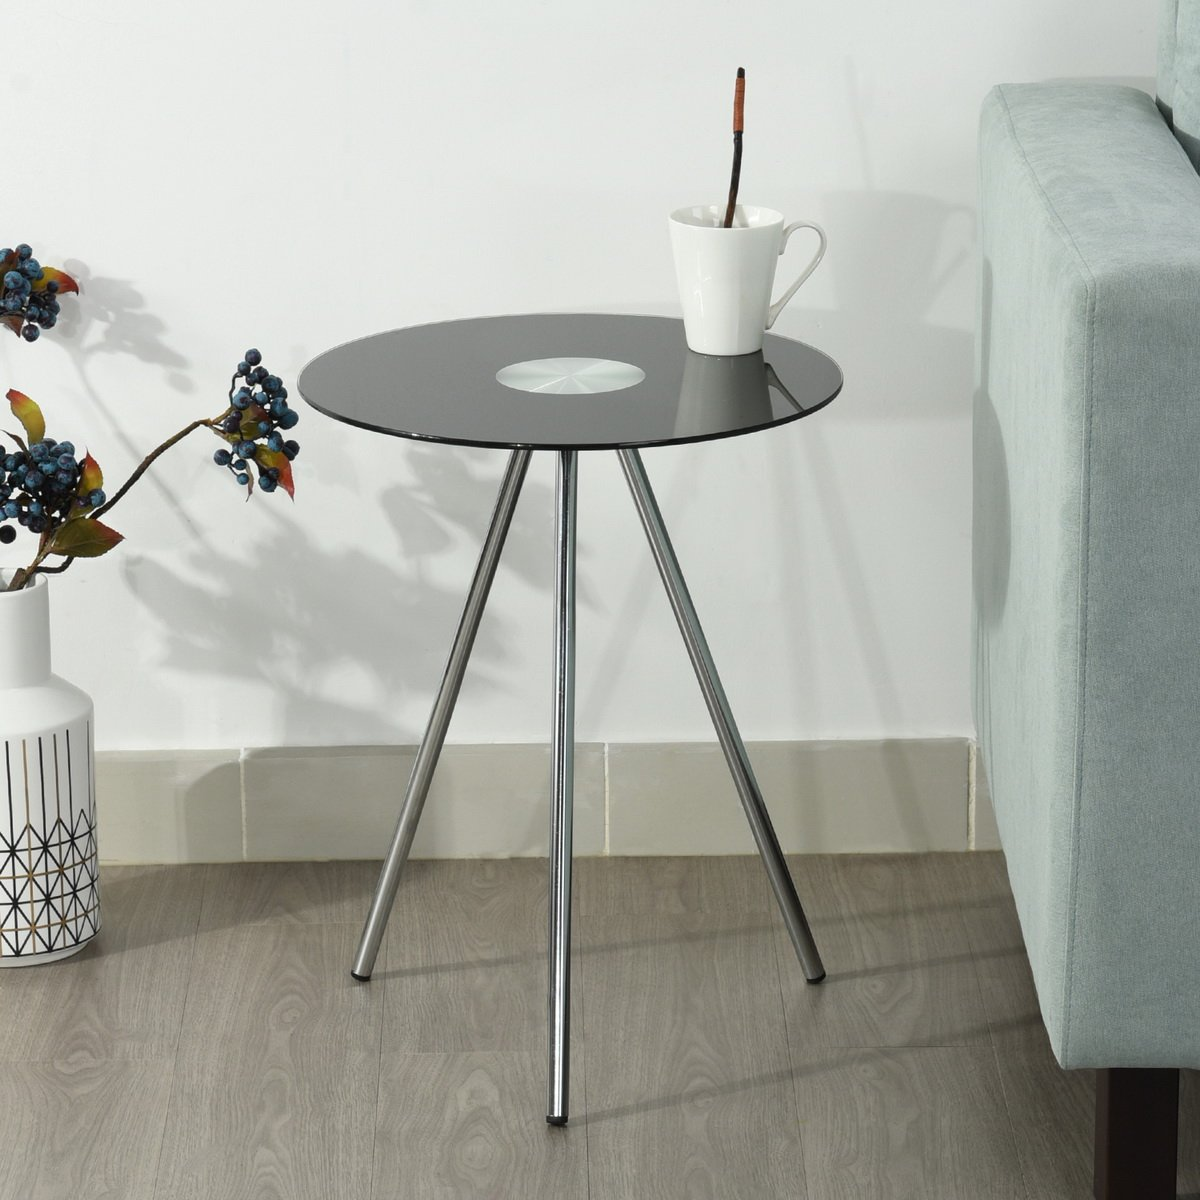 Height Of Coffee Table To Sofa: Black Living Room Office Coffee Table Side Sofa End Lamp